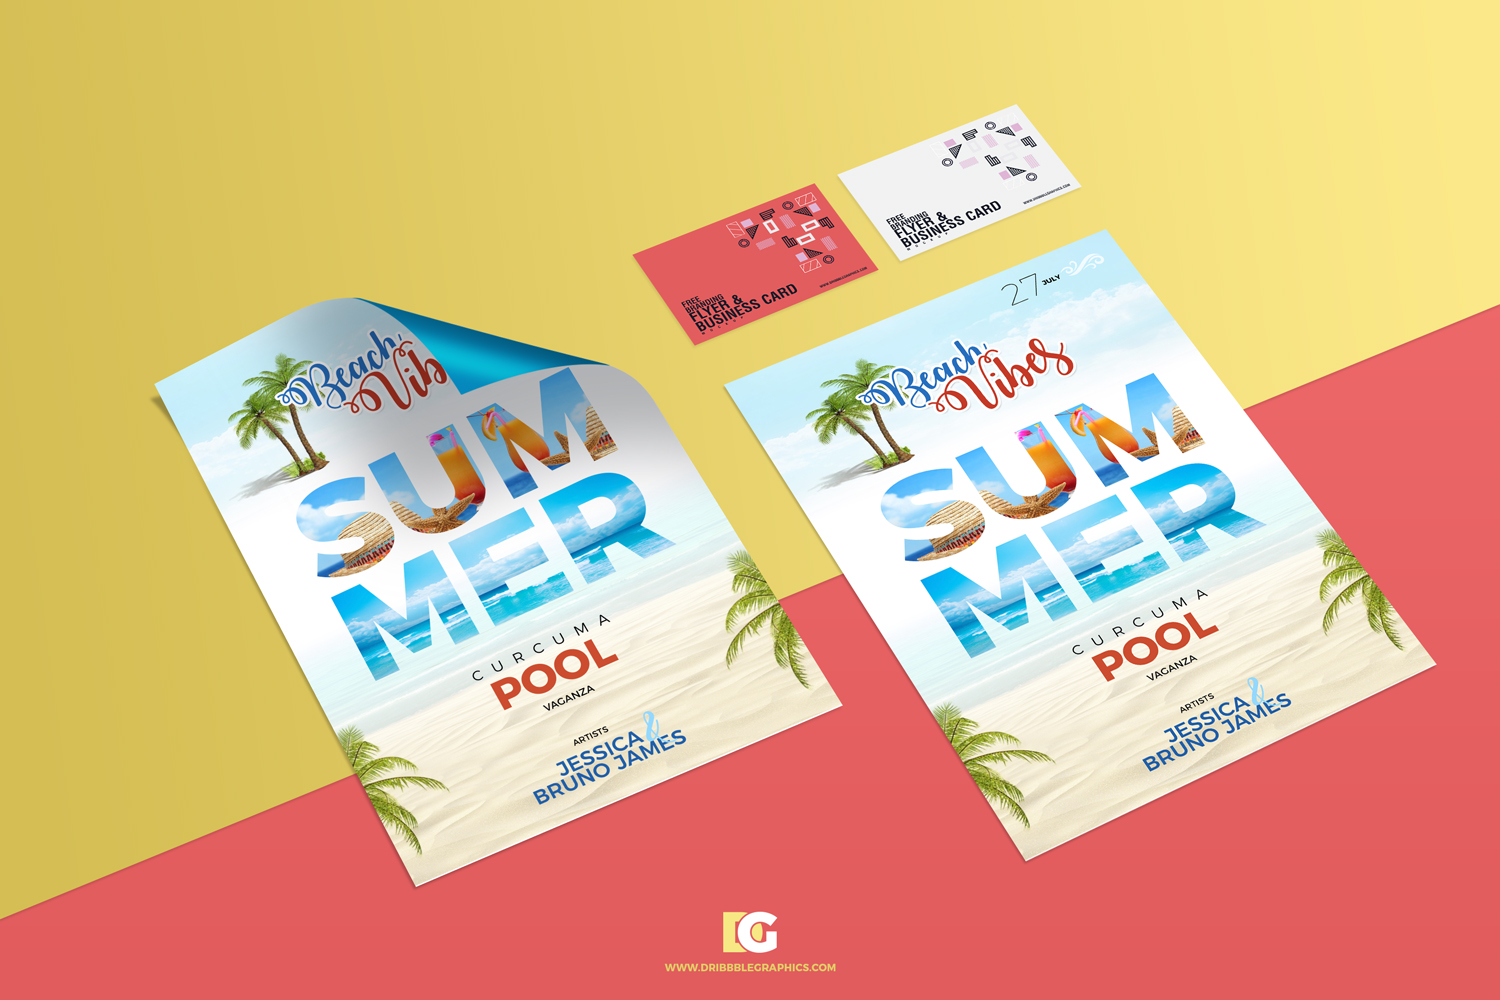 Free-Branding-Flyer-&-Business-Card-Mockup